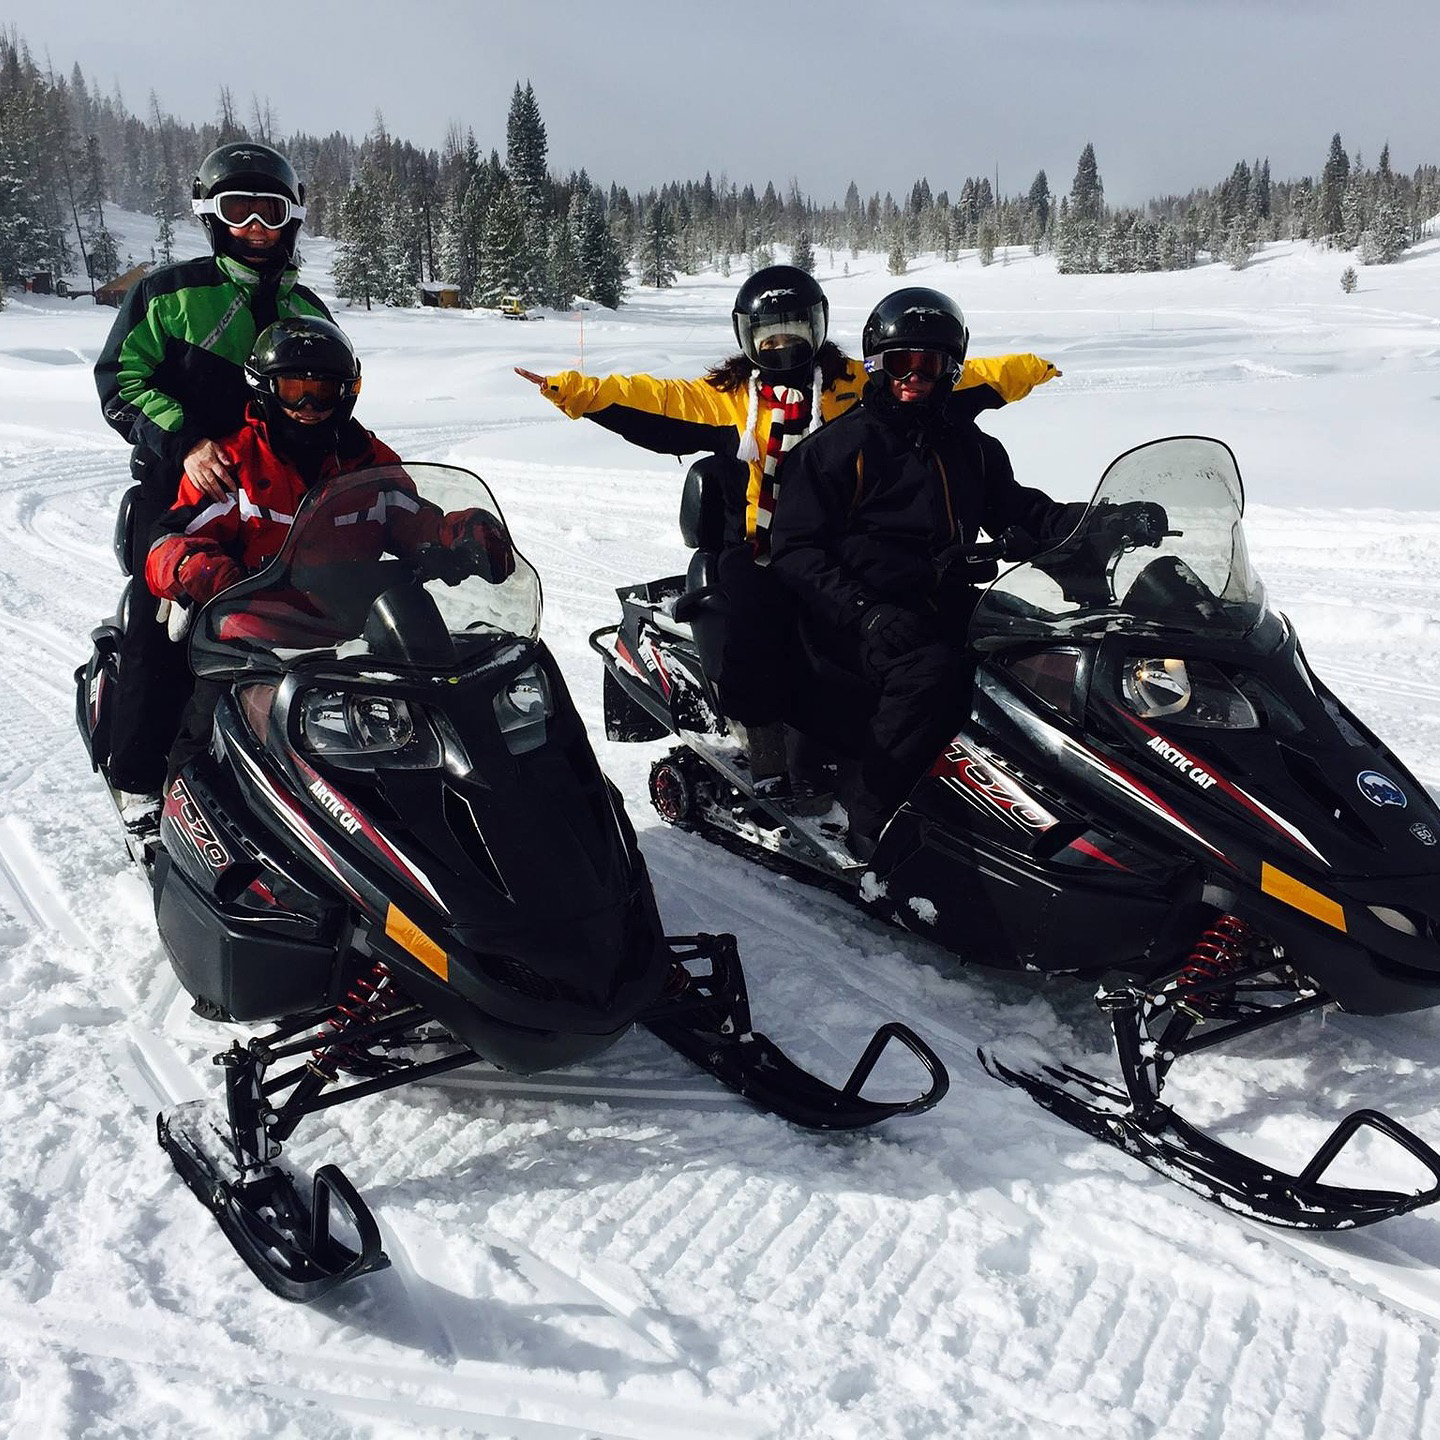 snowmobile insurance michigan, snowmobile insurance near me, insurance for my snowmobile